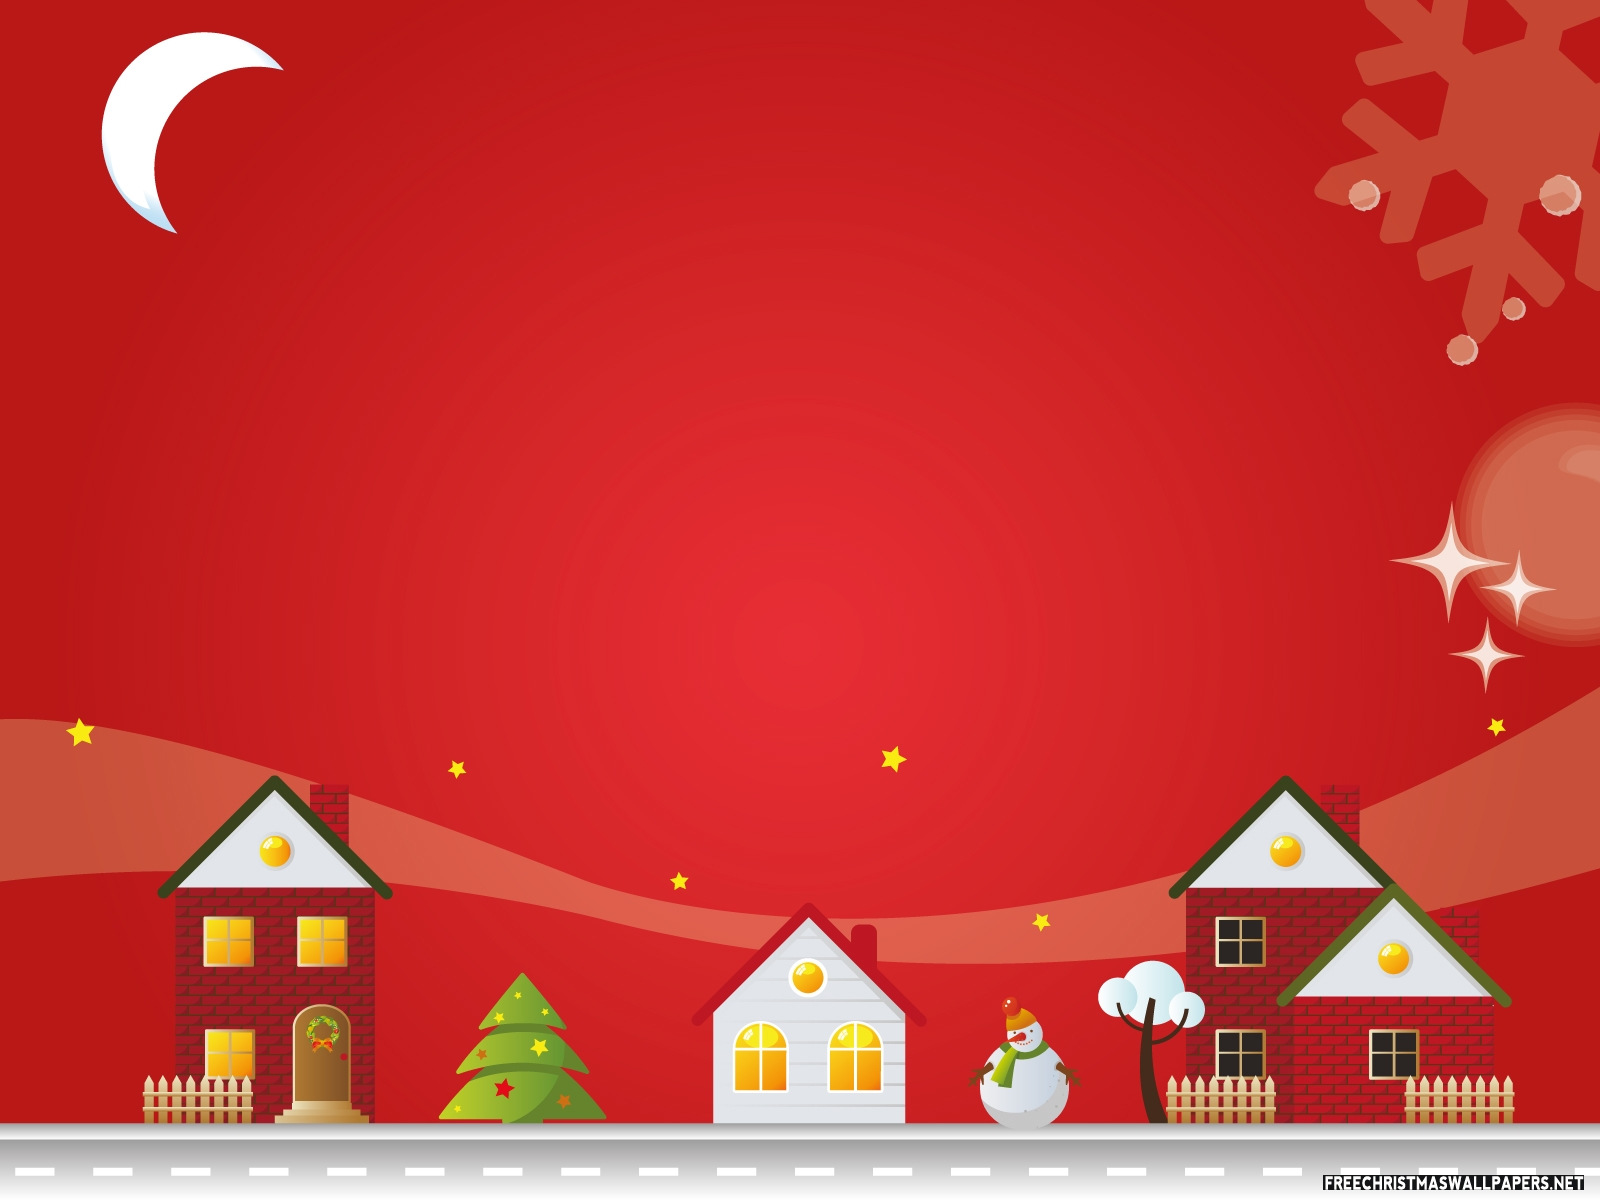 Christmas images Christmas HD wallpaper and background photos ...